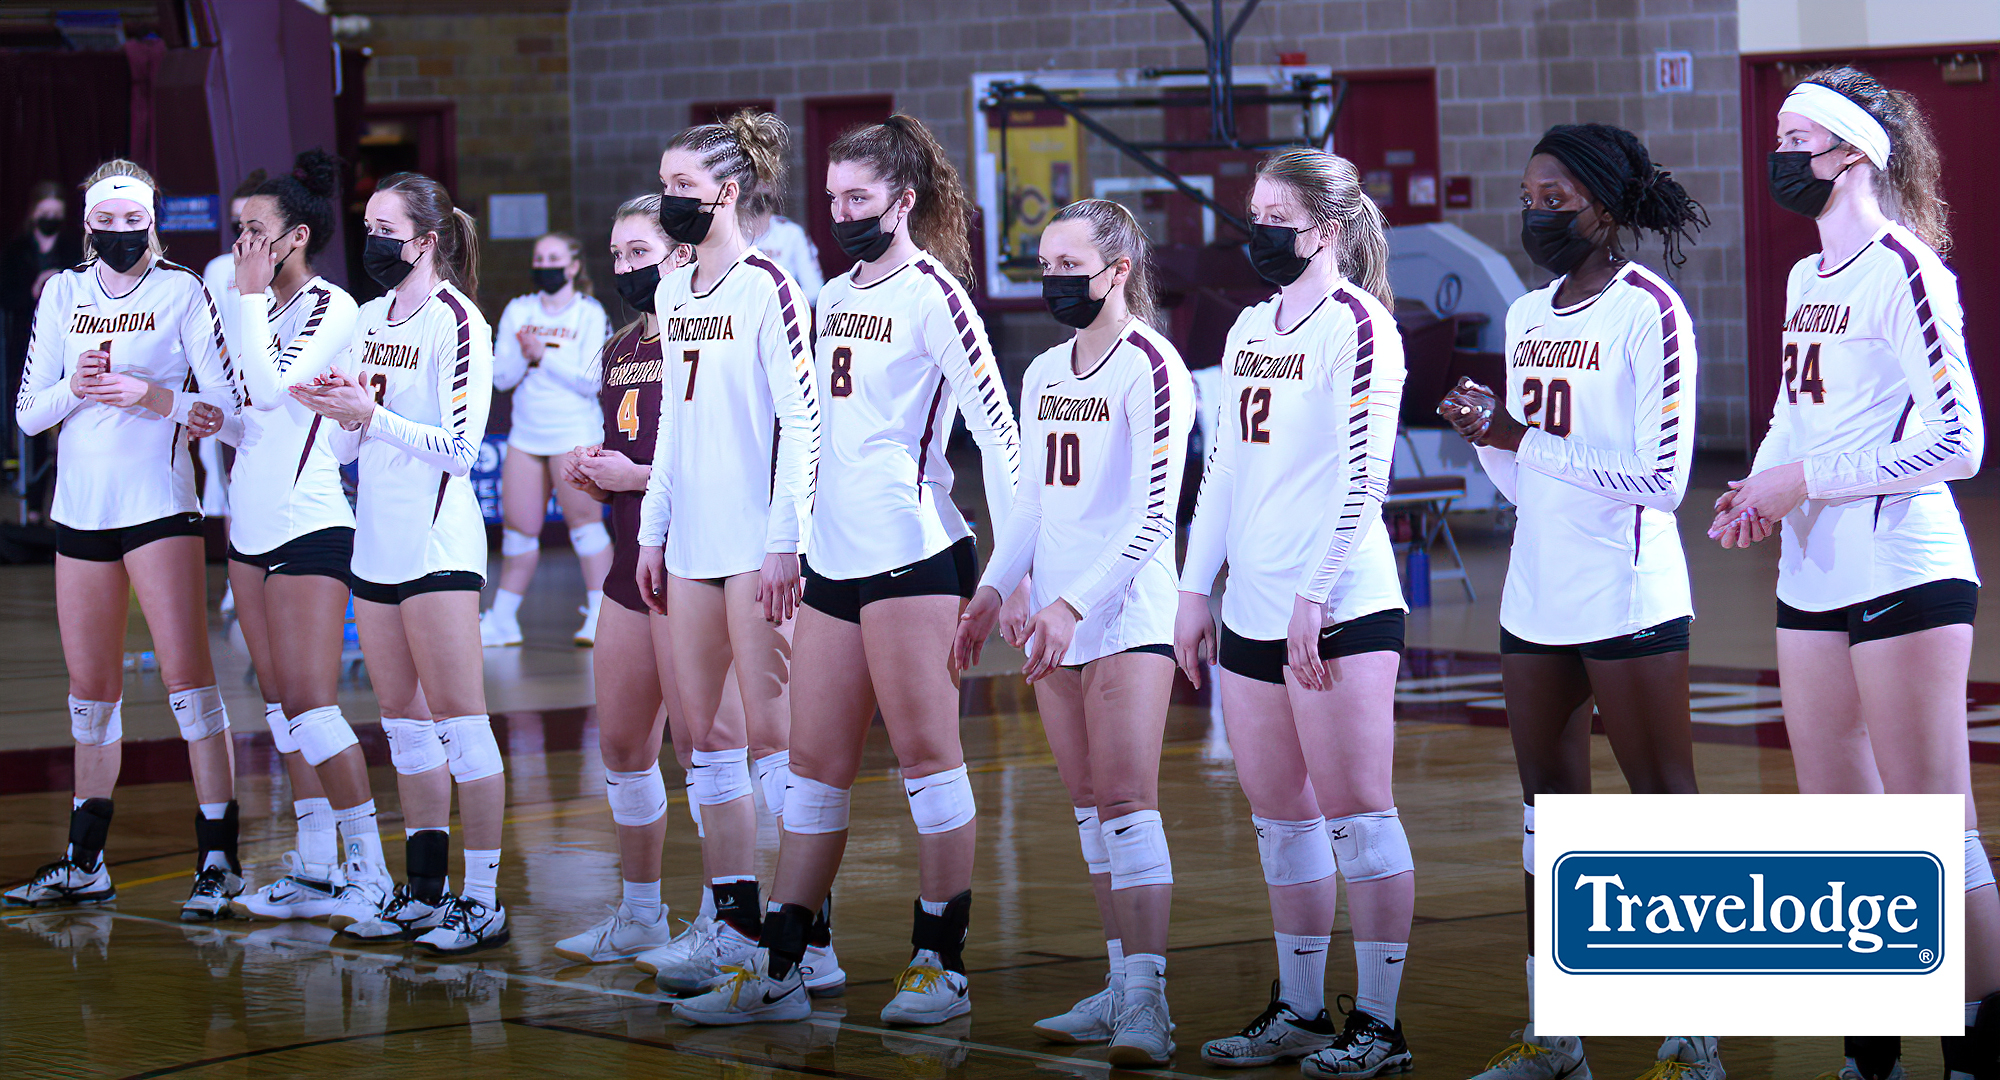 Concordia lines up before the start of their season opener against Bethel. The Cobbers hosted the first game of the season on Saturday after the fall season was delayed due to Covid.